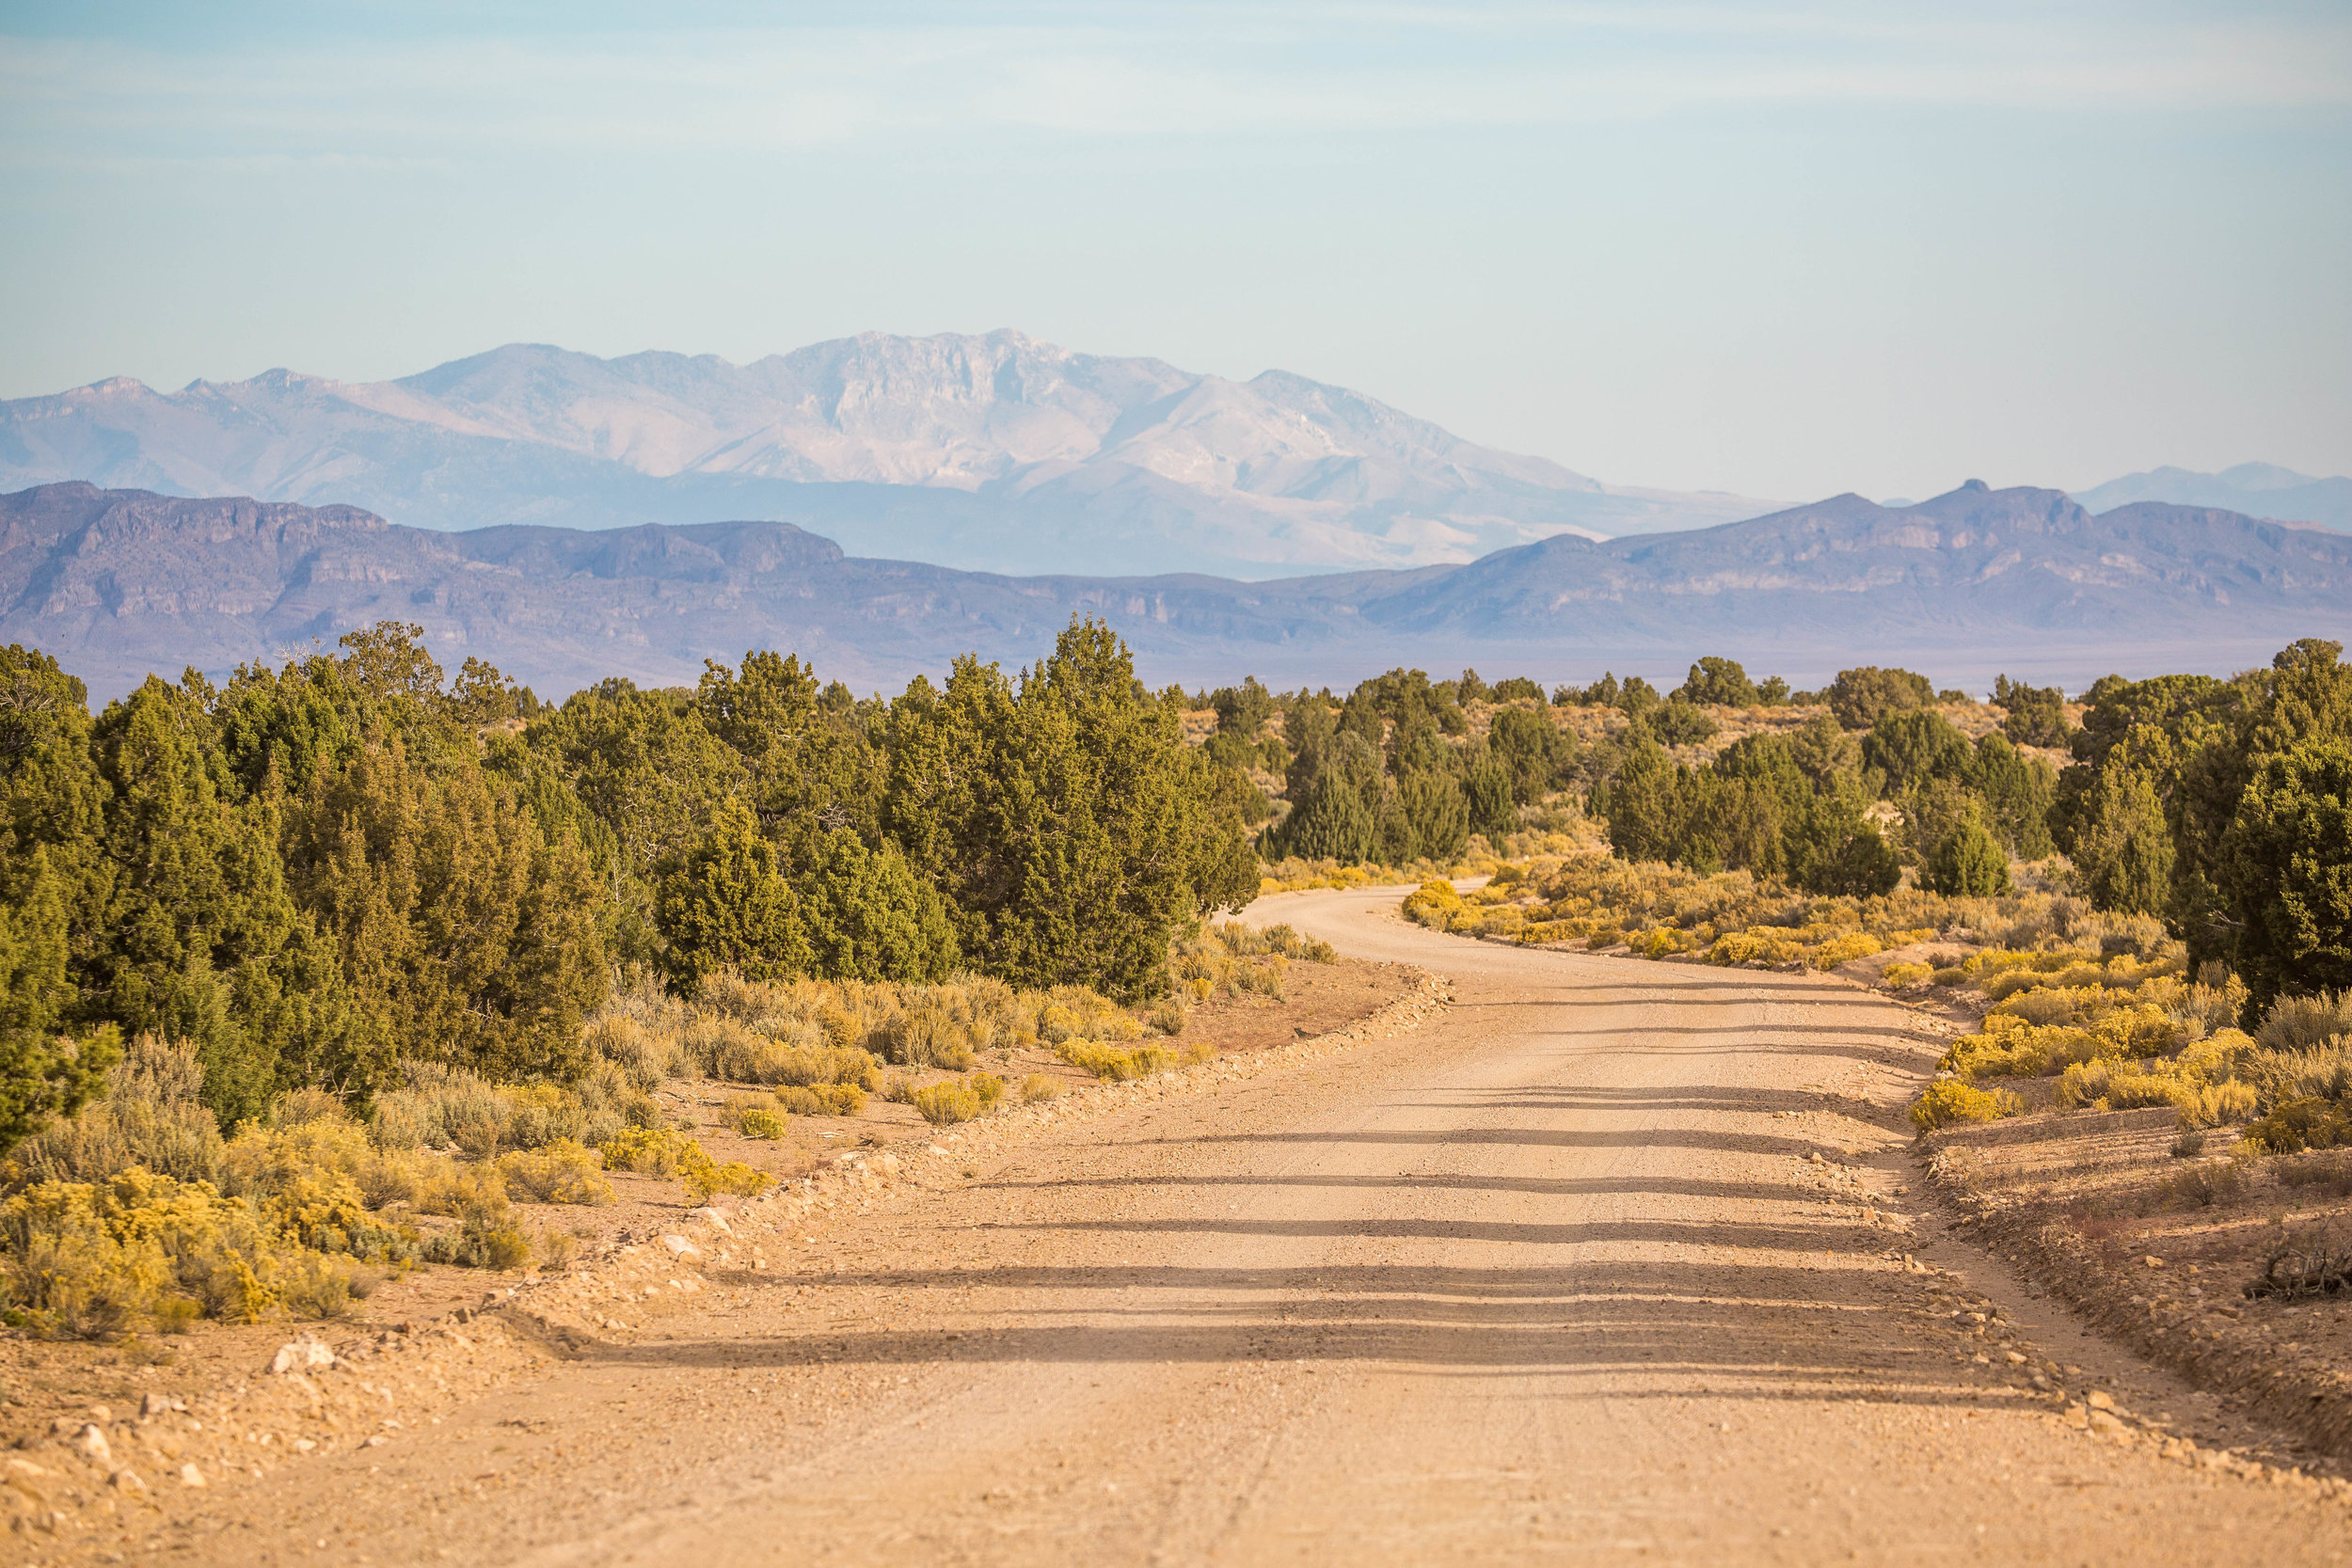 mail summit road - Mail Summit Road through Coal Valley. The road was in a very good condition for the most part when we visited in November 2017. Due to its remoteness it's always good to be prepared with extra supplies and a spare tire, as well as with a good map/GPS.